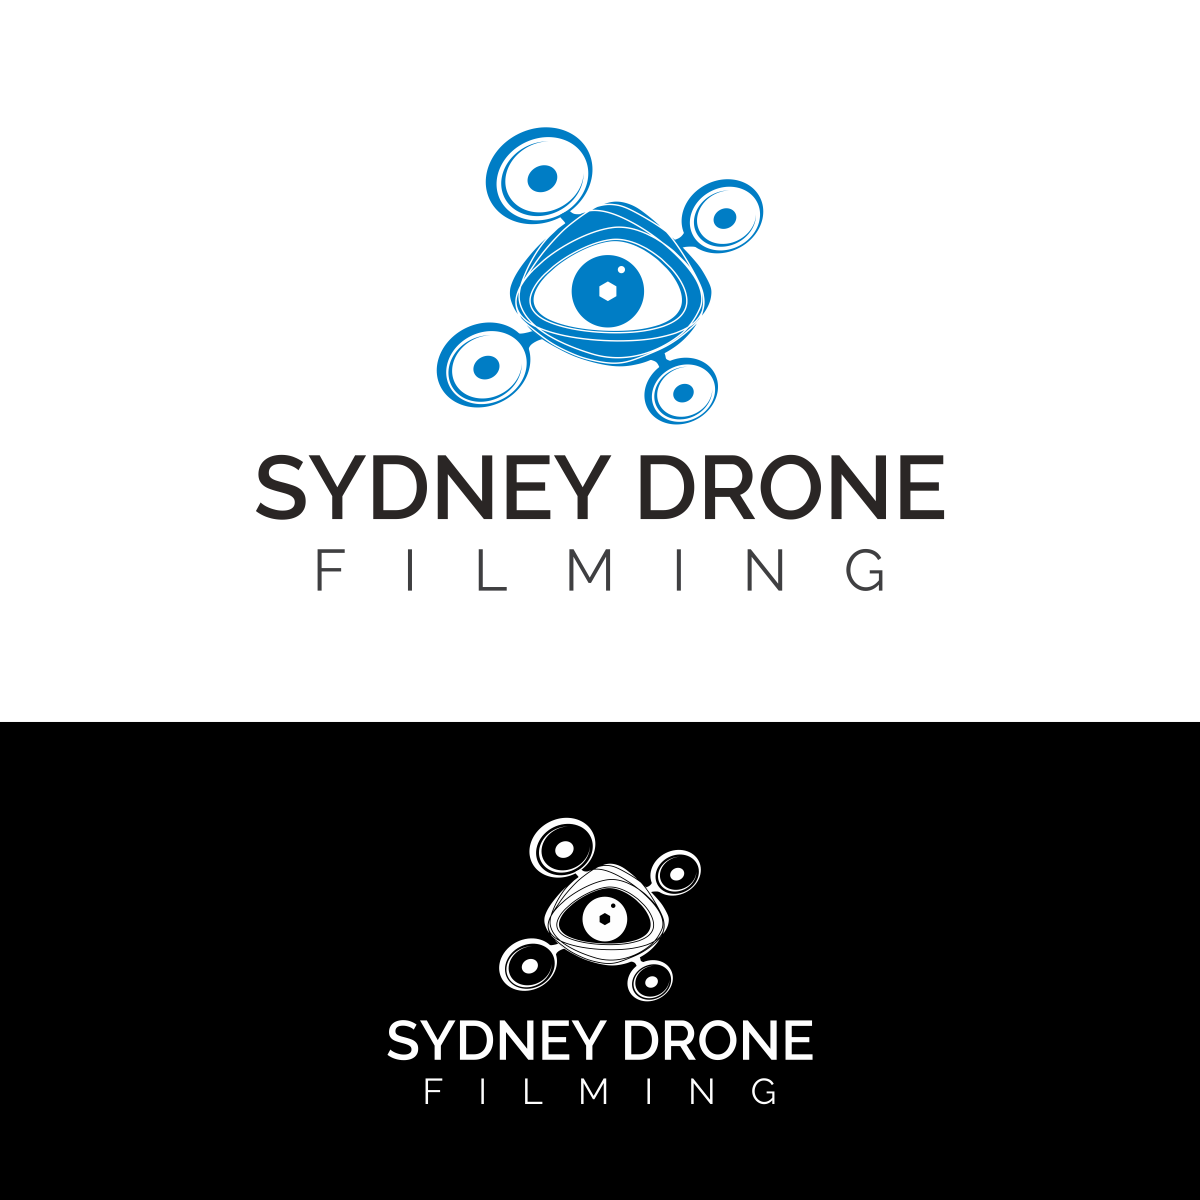 Bold, Playful, It Company Logo Design for Sydney Drone